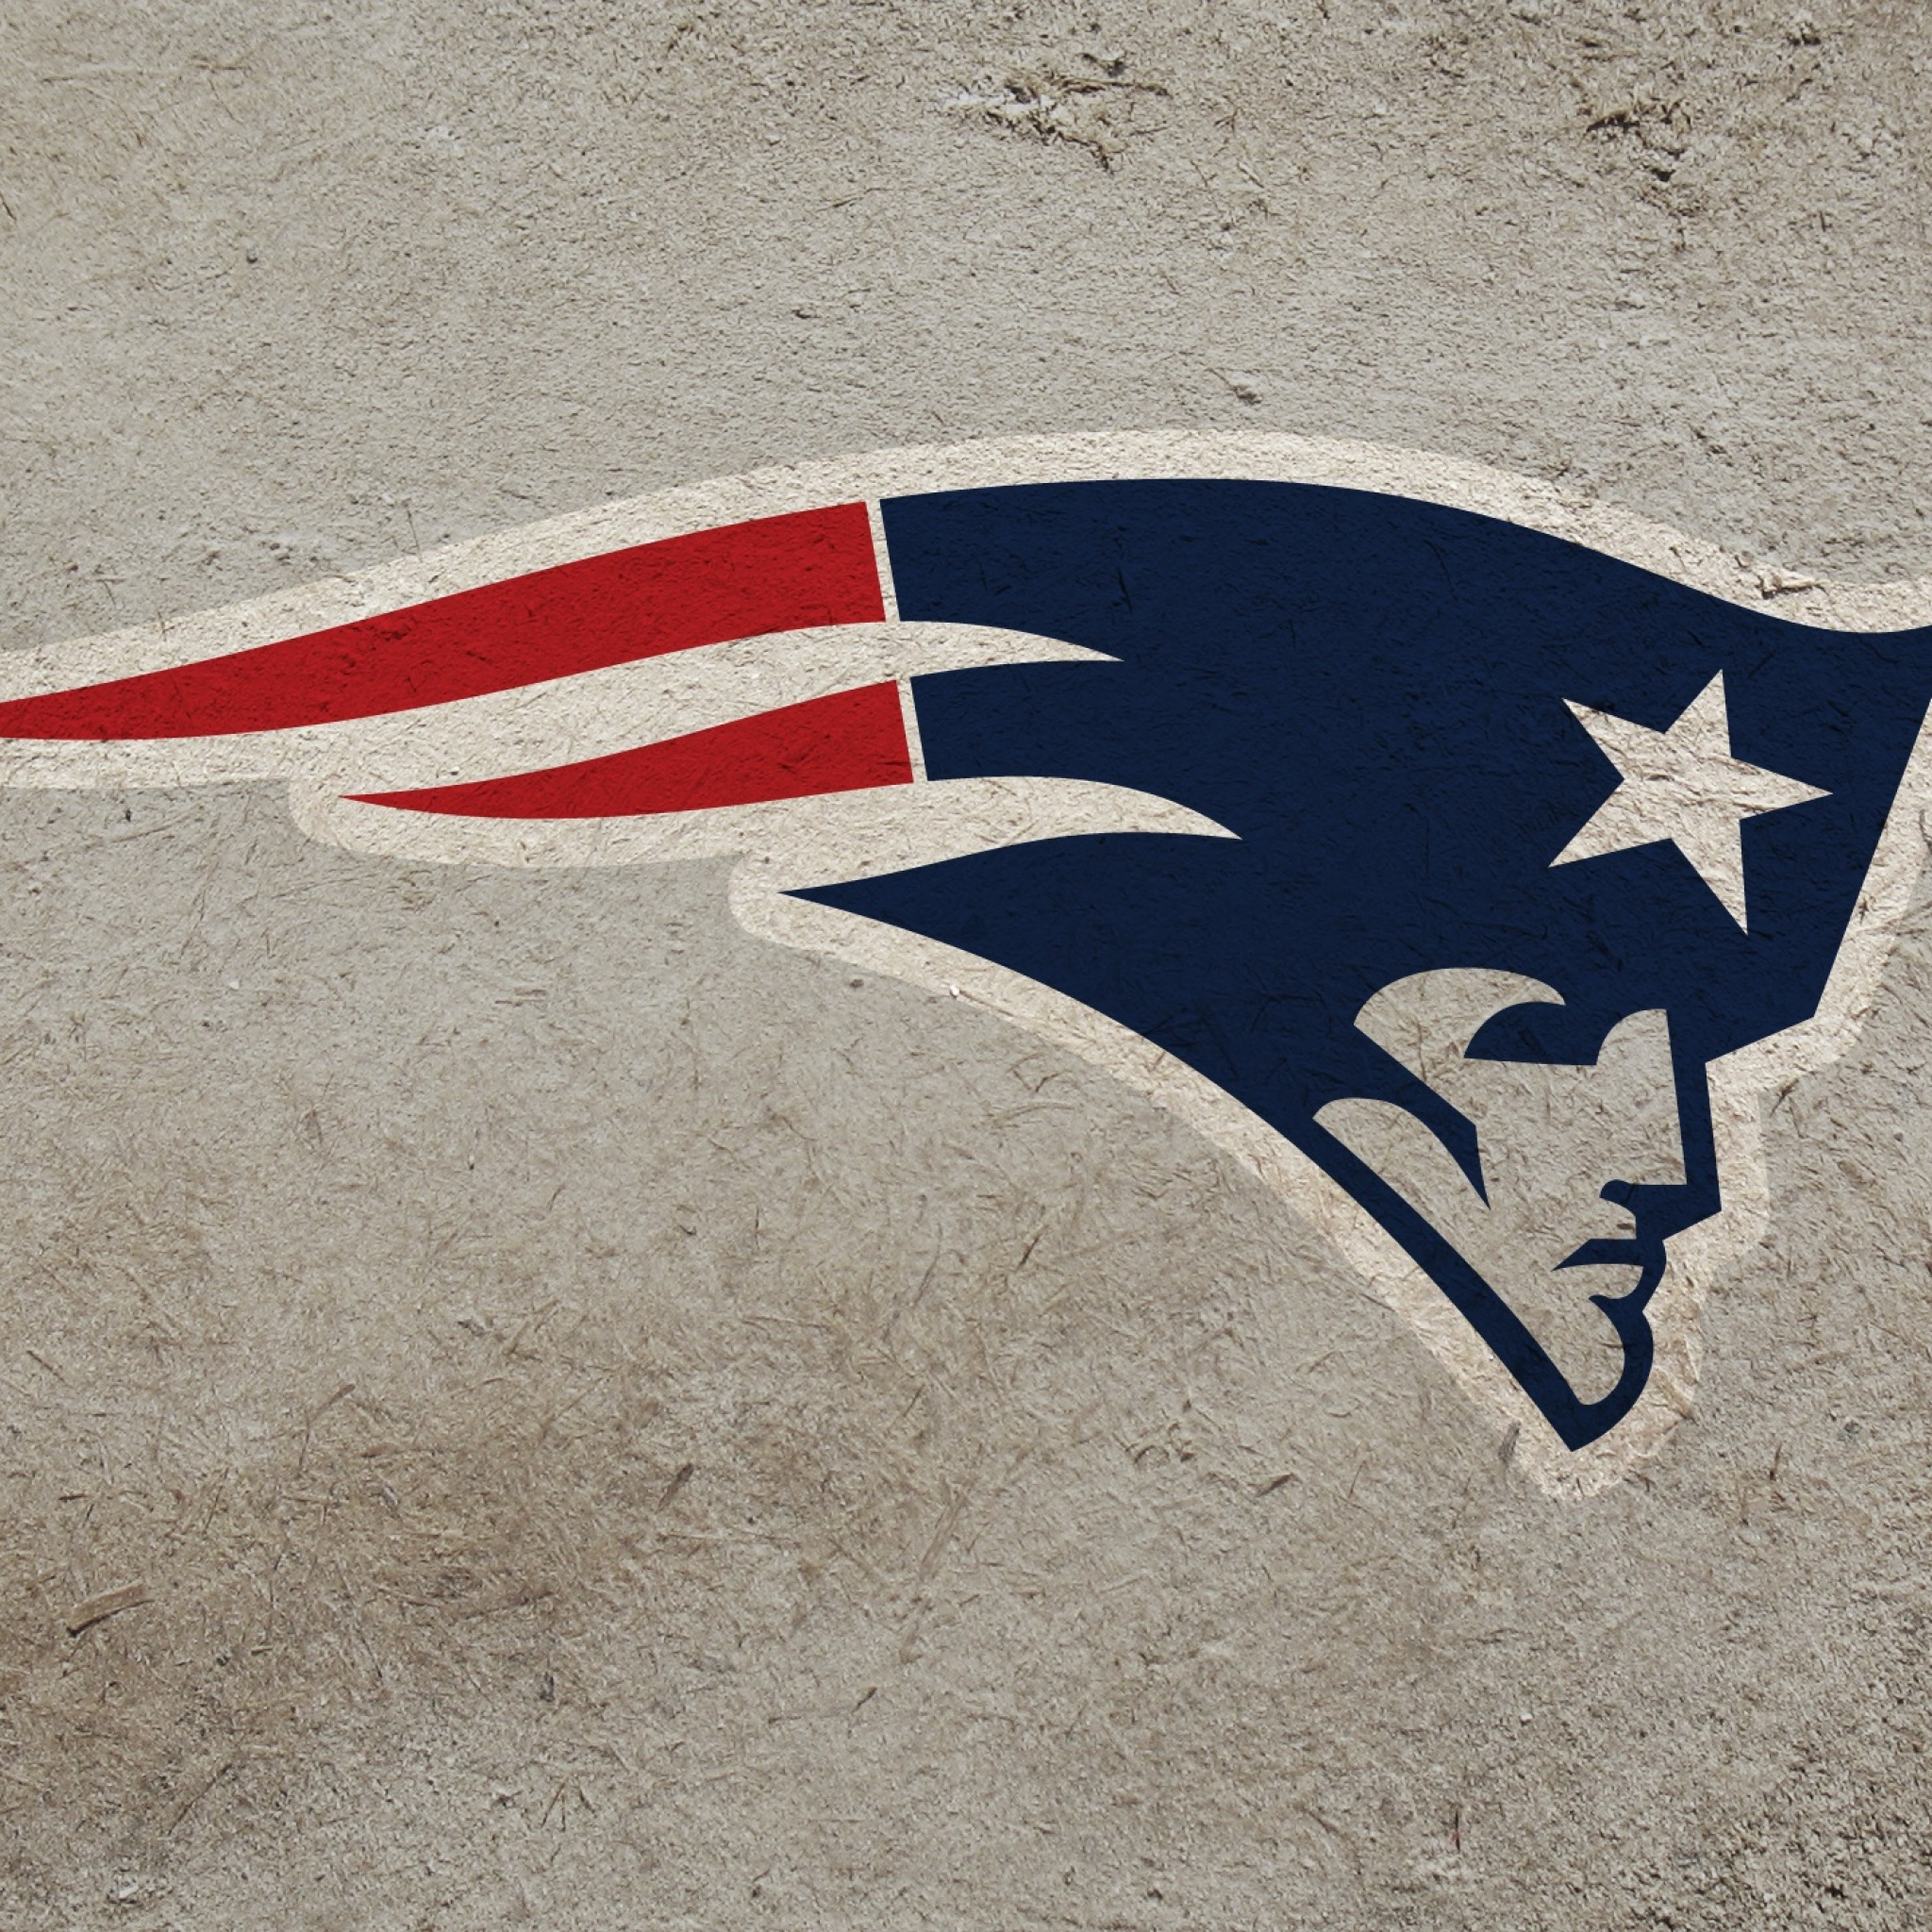 Patriots Logo Wallpaper: Superbowl XLIX Wallpapers For IPhone And IPad